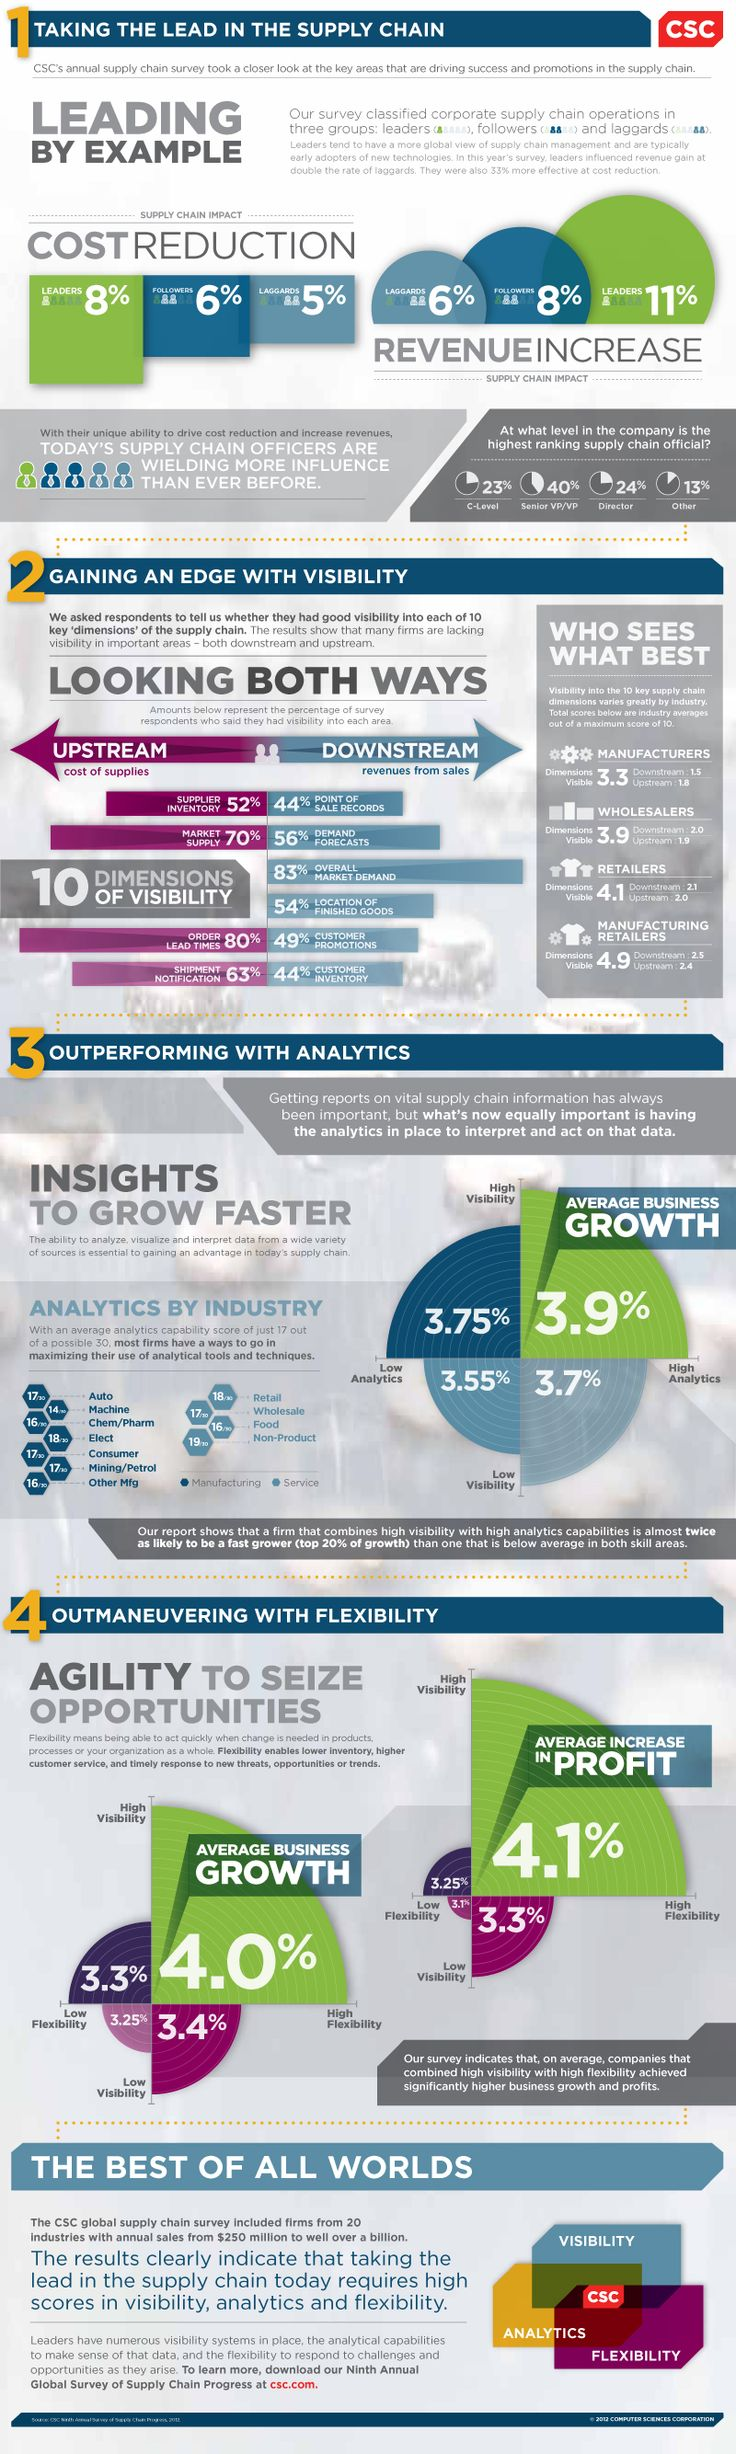 Firms that combine visibility with analytics are 2x as likely to be in the top 20% of the fastest growing companies.